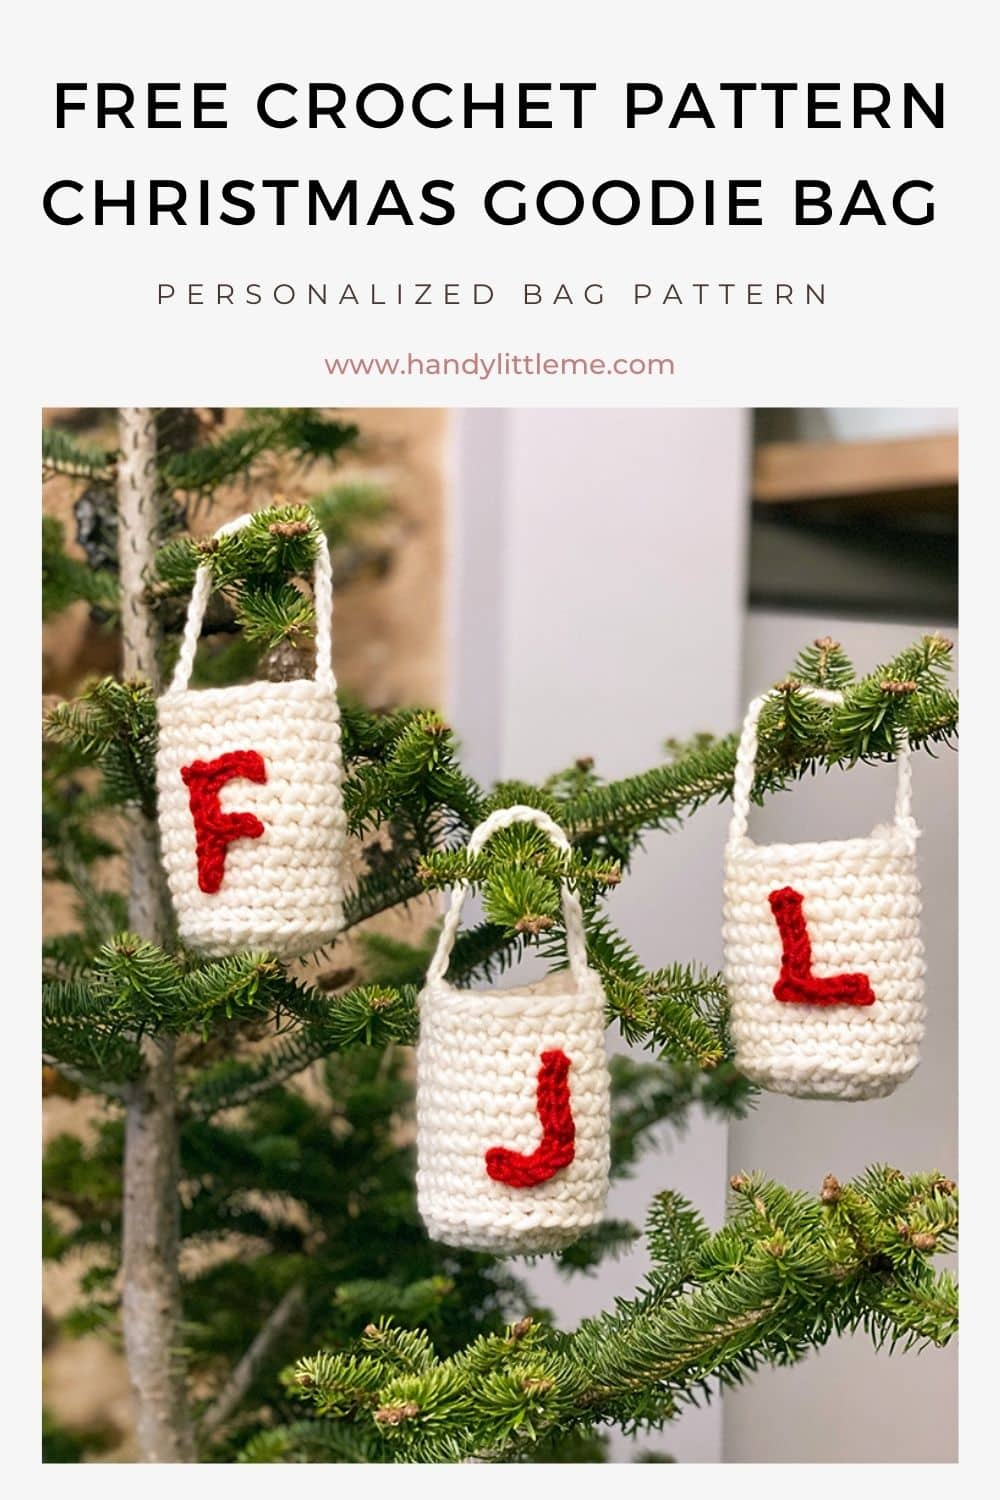 Free Christmas goodie bag pattern